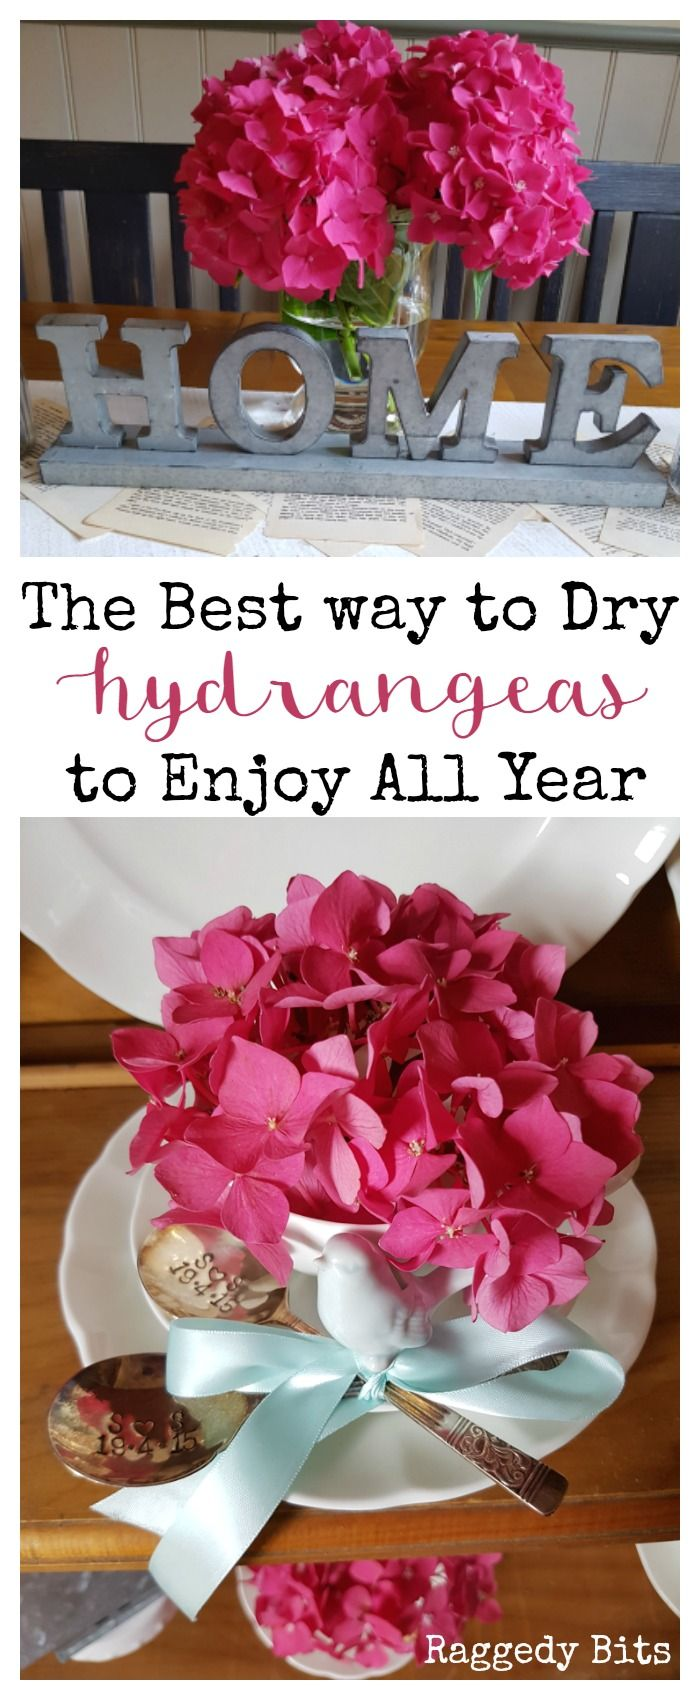 Sharing the best way to dry hydrangeas to enjoy all your round, using a little tip that my Granny shared with me | www.raggedy-bits.com